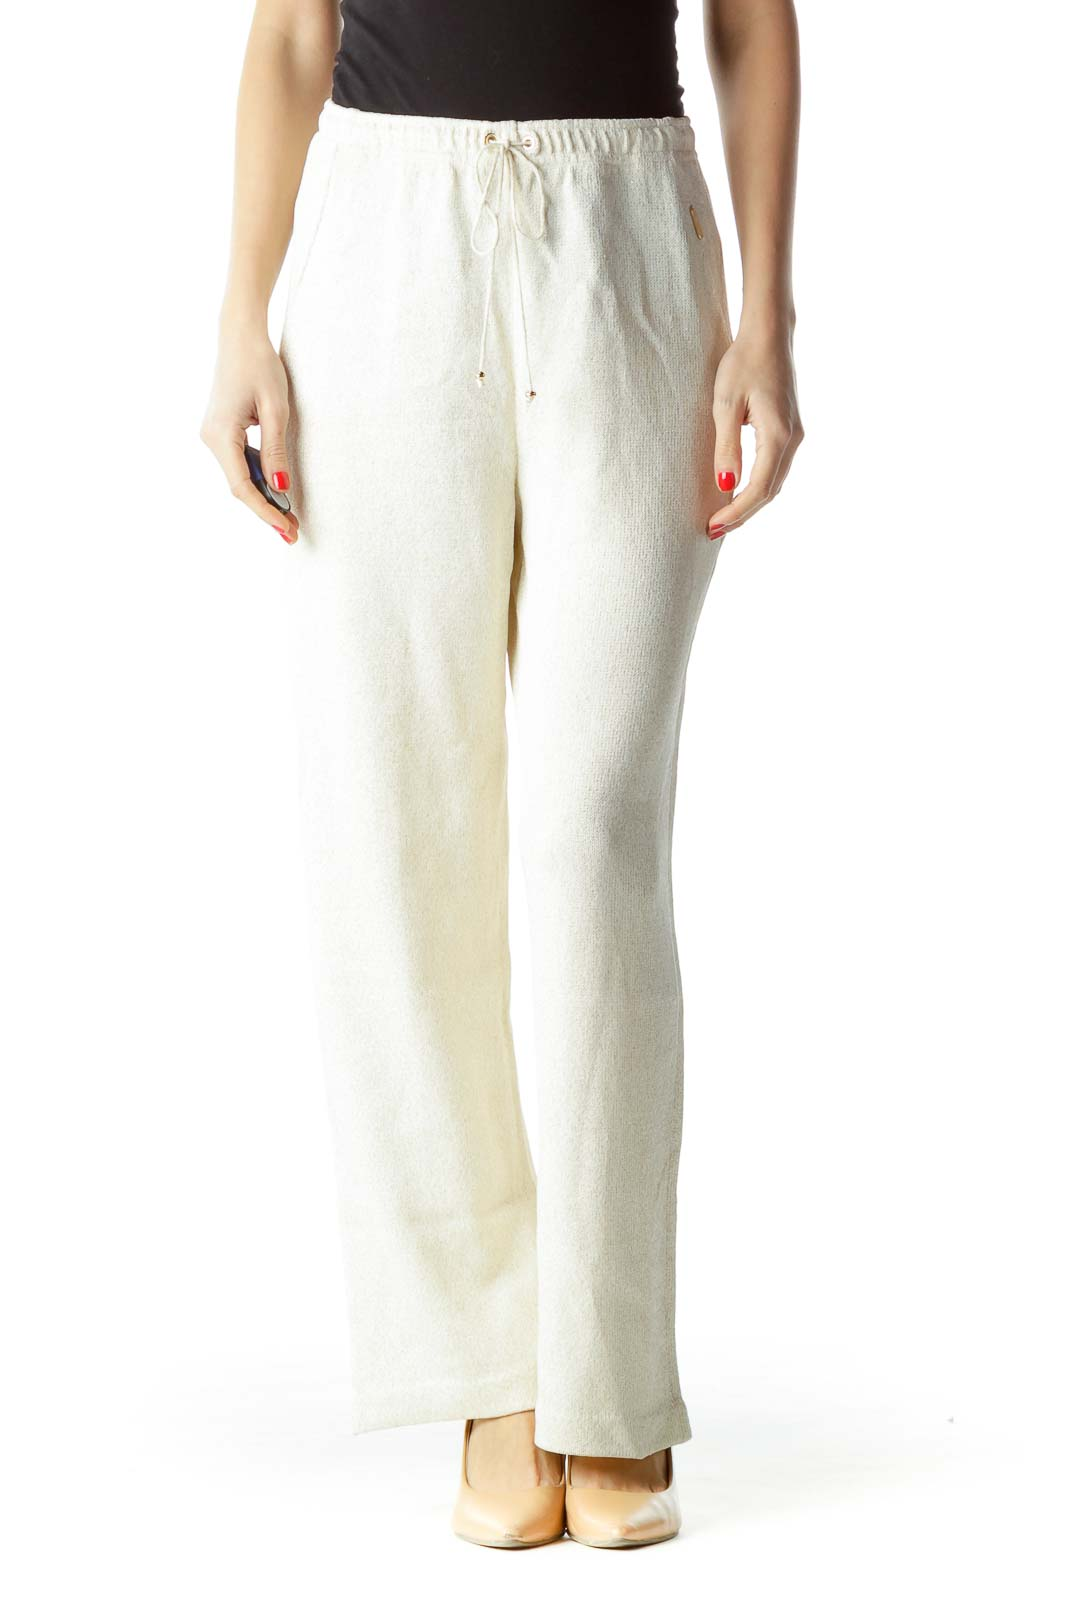 Cream Gold Metallic Drawstring Sports Pants